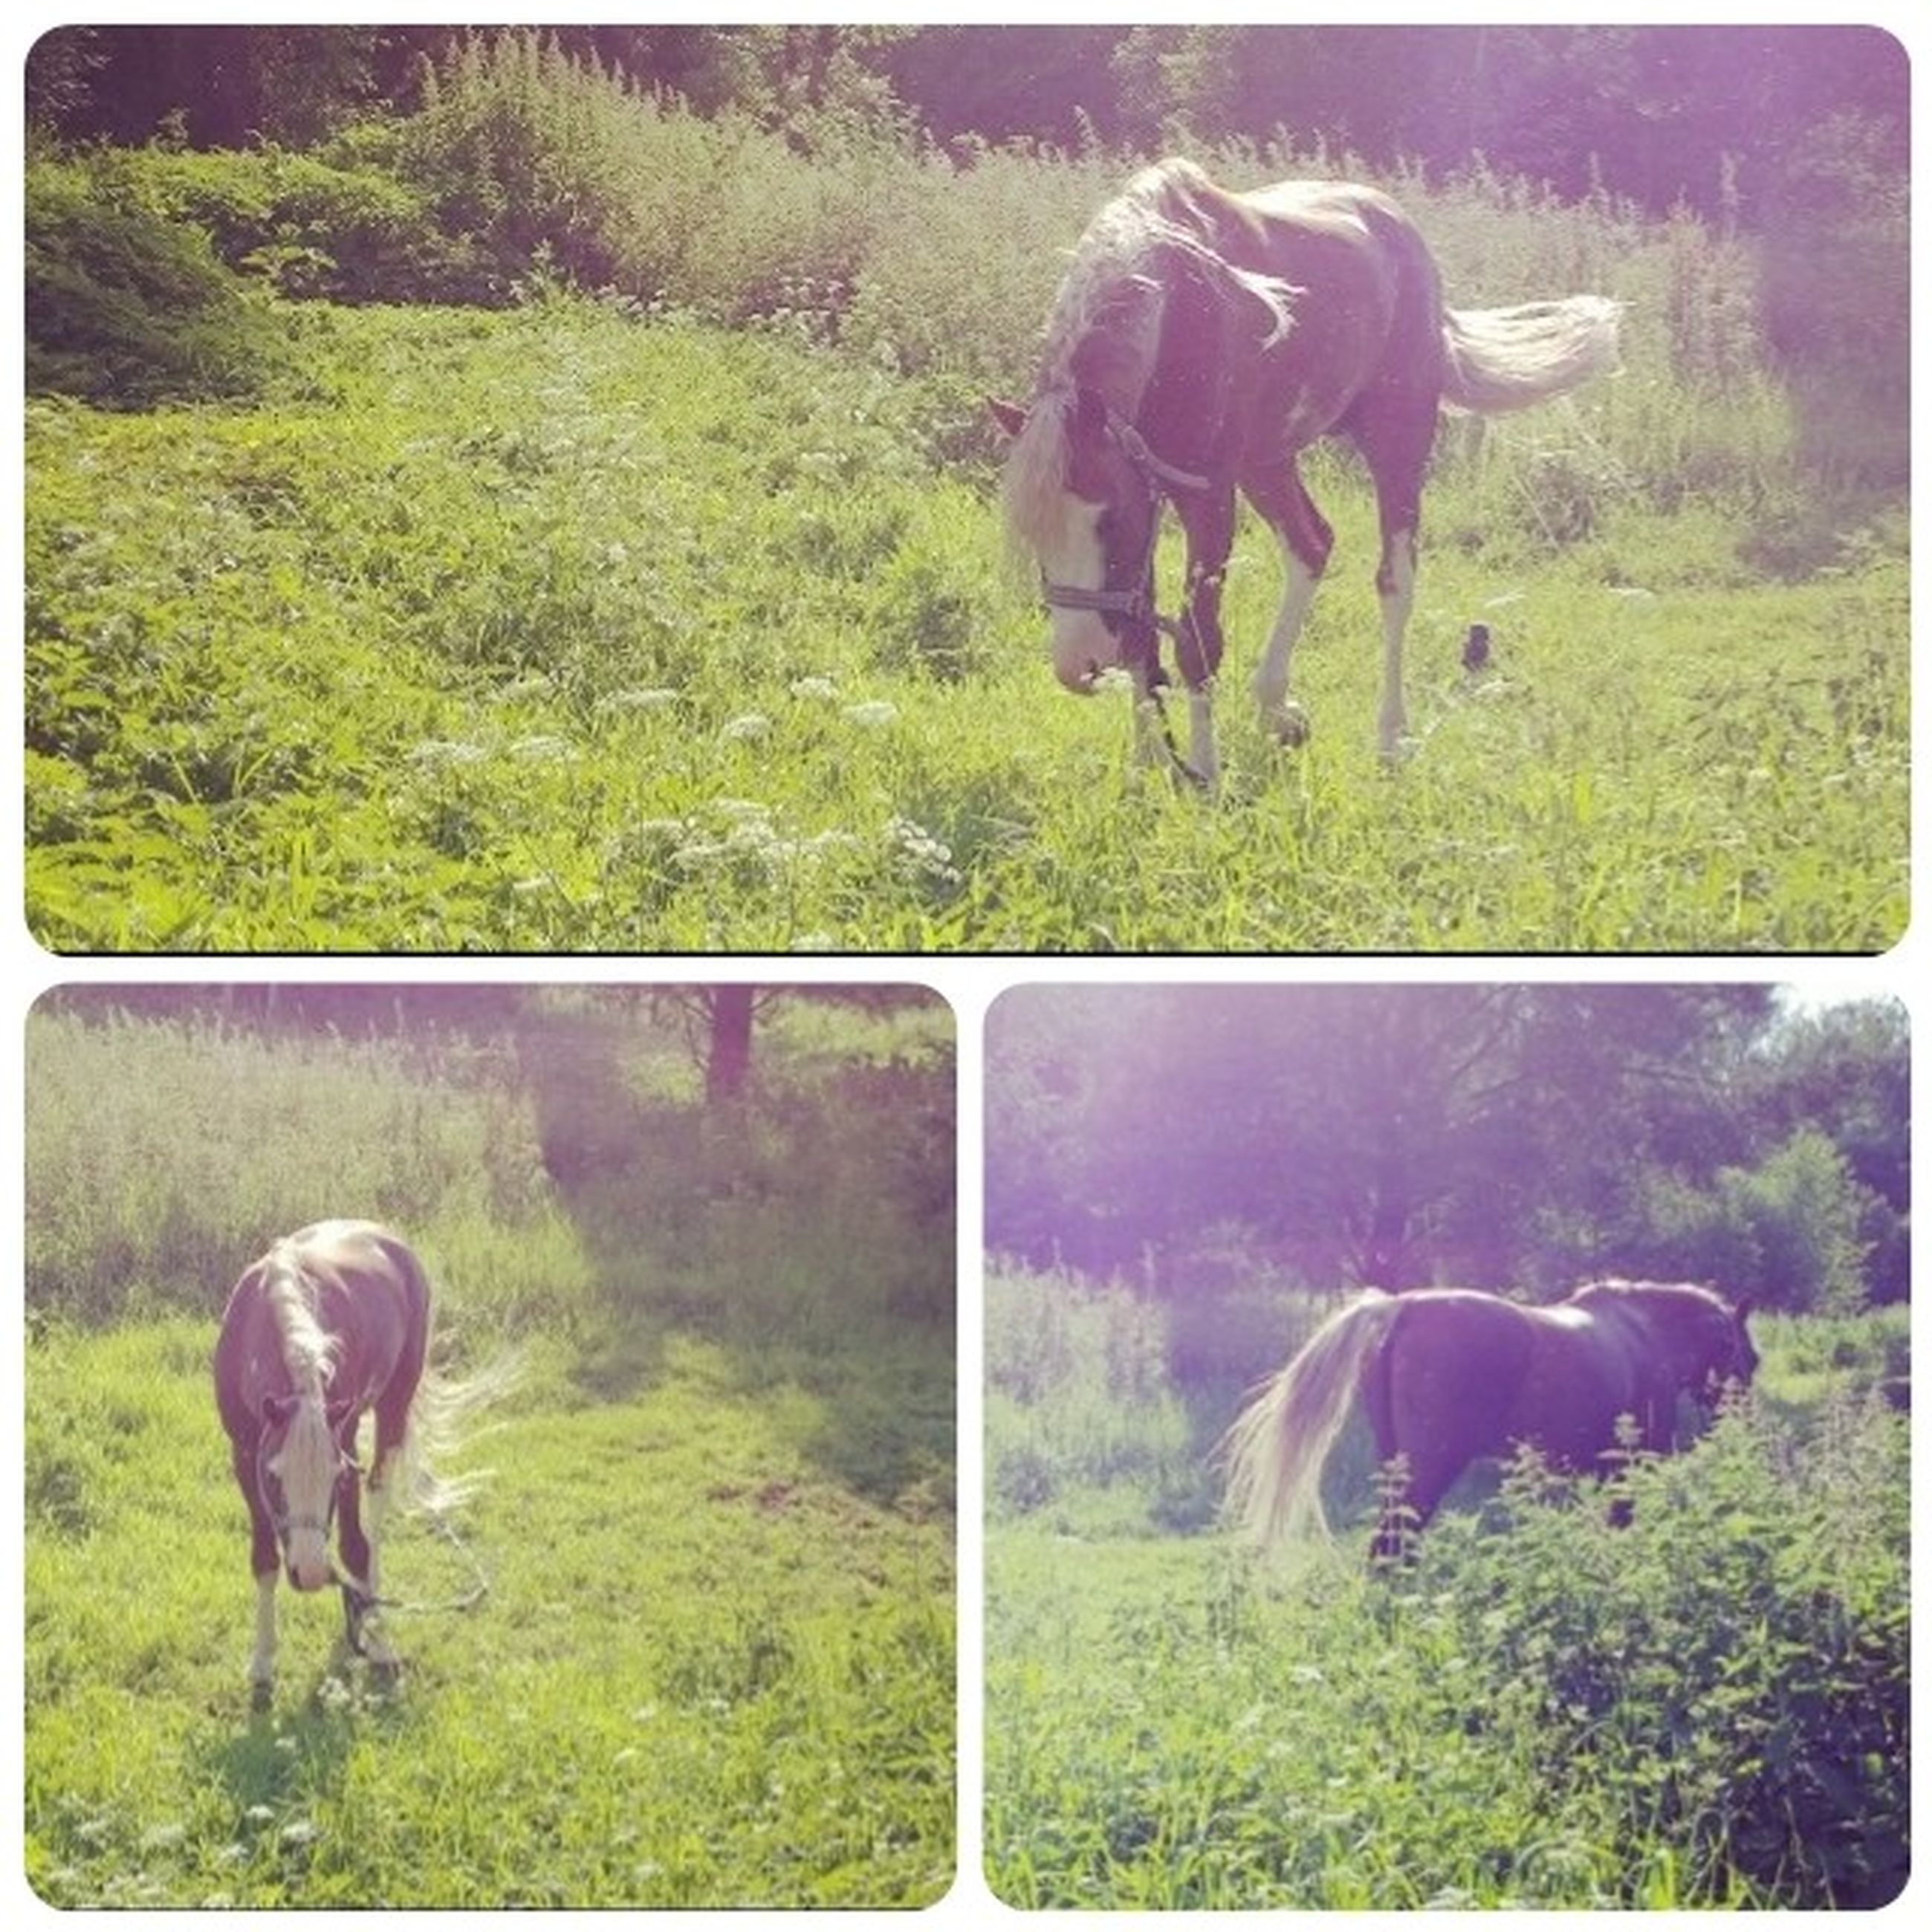 animal themes, domestic animals, transfer print, mammal, grass, livestock, field, auto post production filter, horse, two animals, grazing, grassy, standing, green color, herbivorous, cow, nature, zoology, pasture, landscape